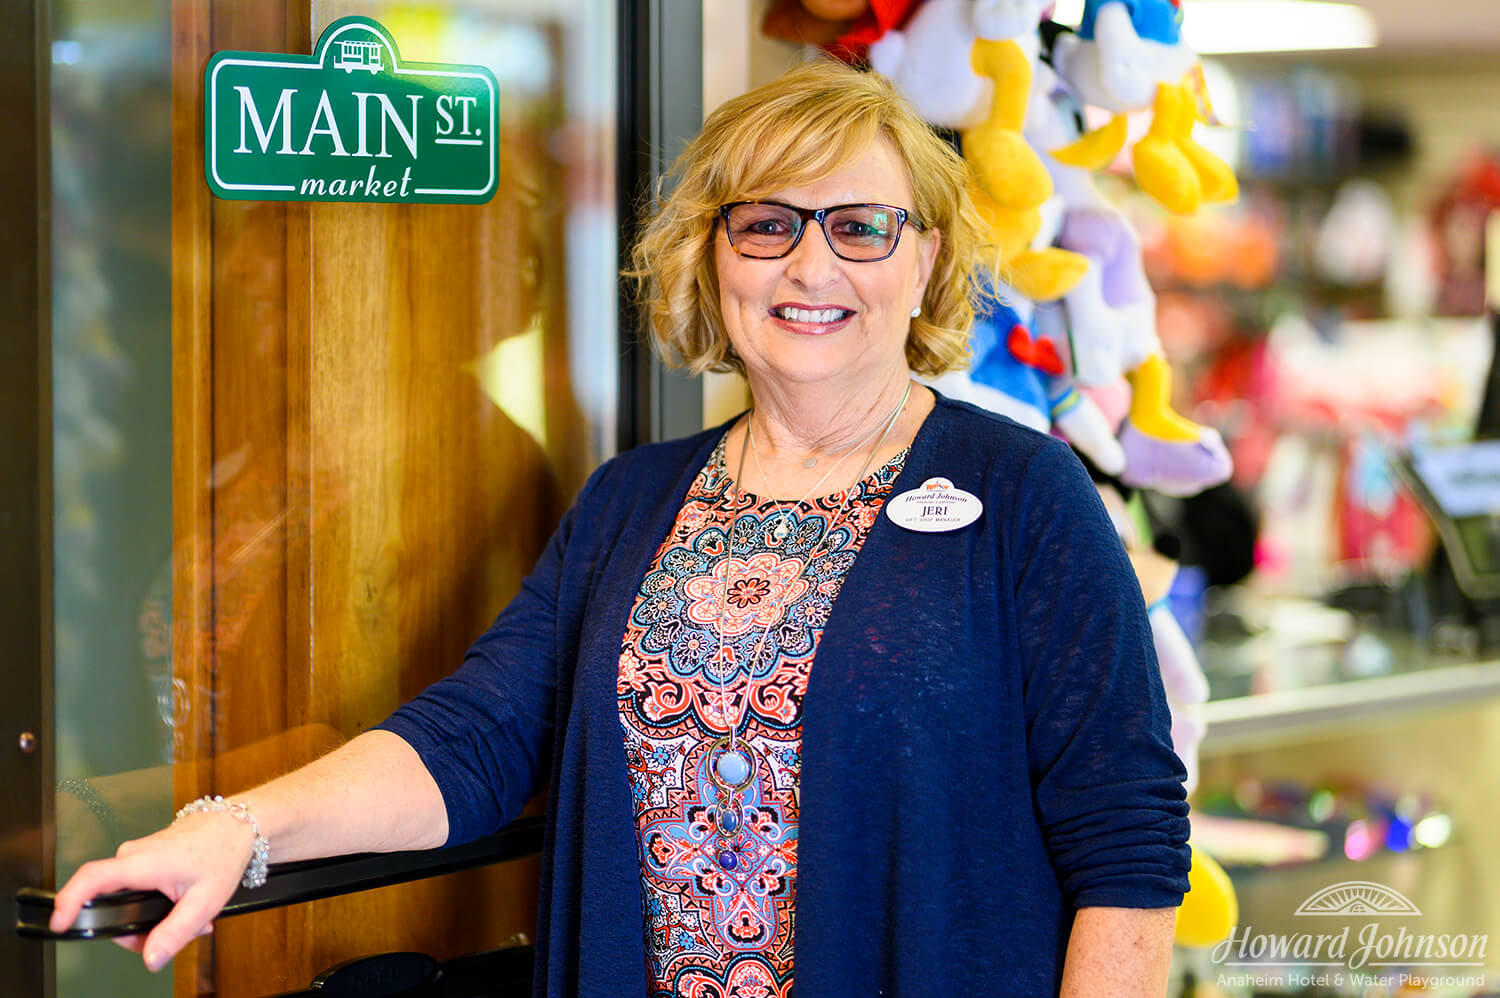 A Howard Johnson Anaheim employee named Jeri poses outside the Main St. Market